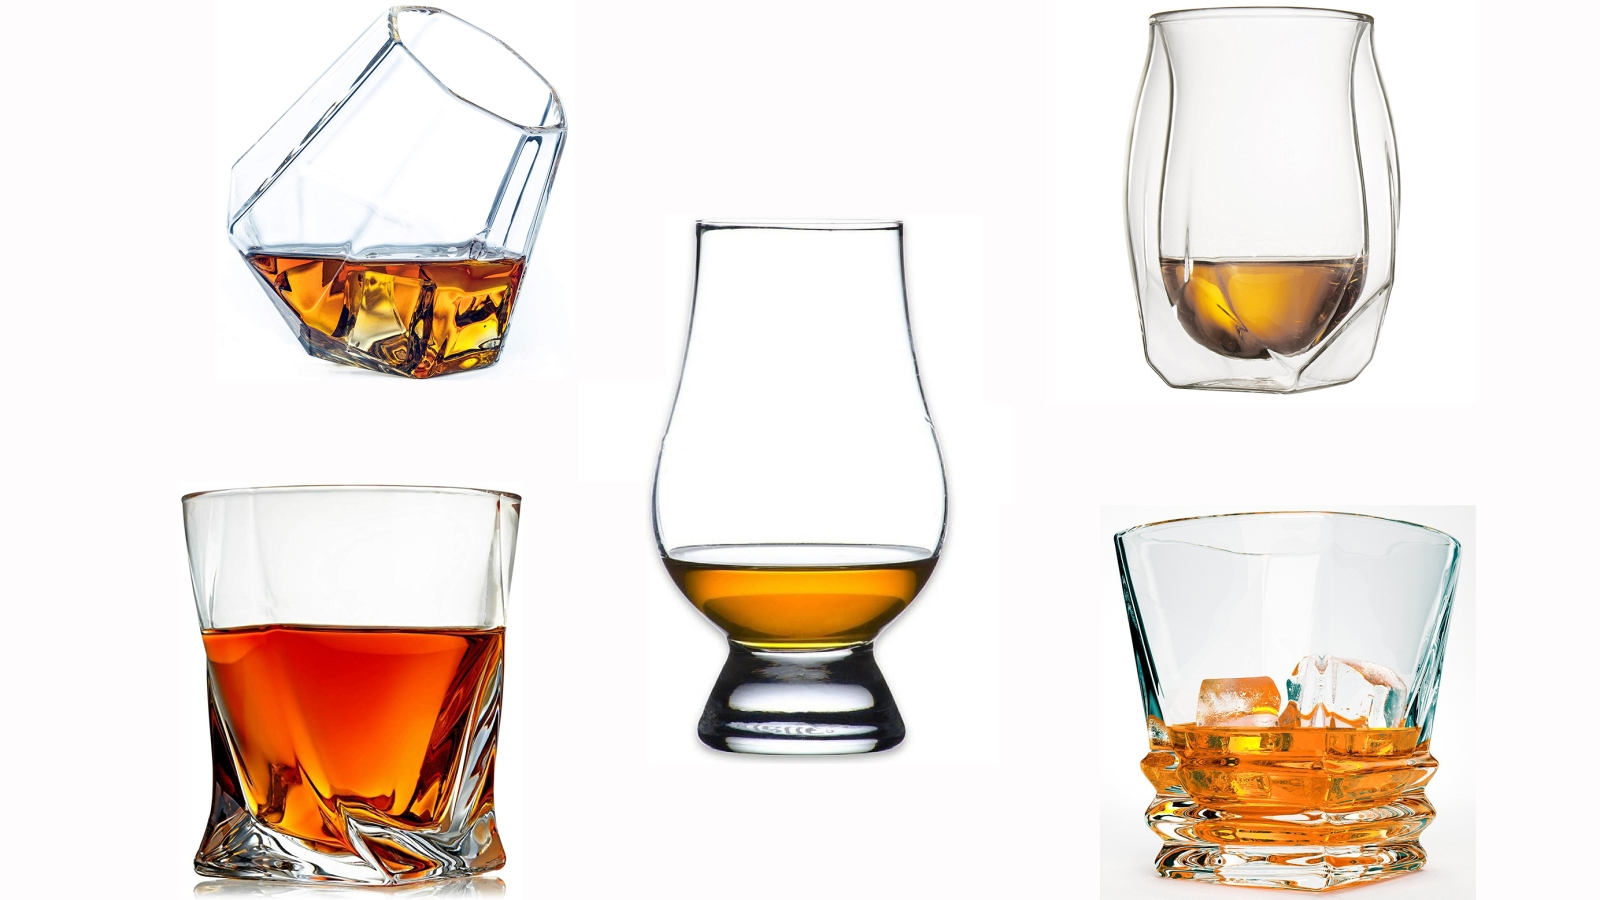 383db5188ad The 11 Best Whiskey Glasses: A Buyer's Guide